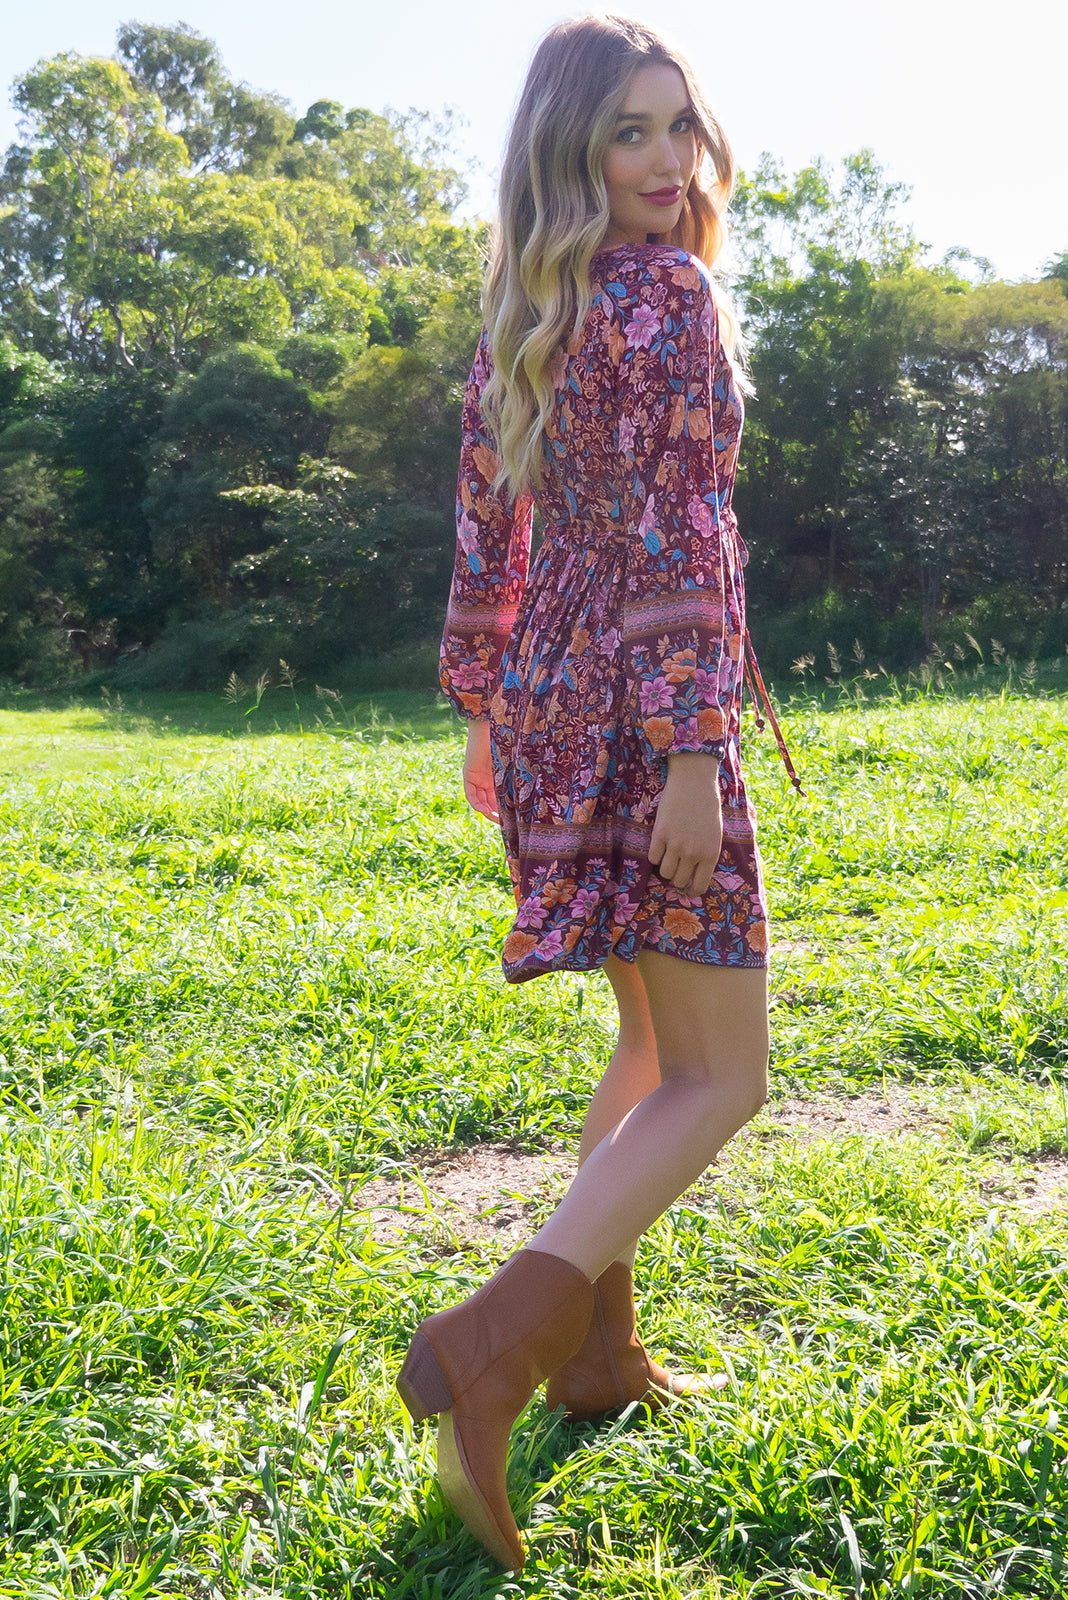 Jennifer Rosewood Dress with a button front, long sleeve with elastic at the wrist, side pockets and a full skirt in a wine red tonal bohemian floral border print on a 100% woven rayon chic and effortless style